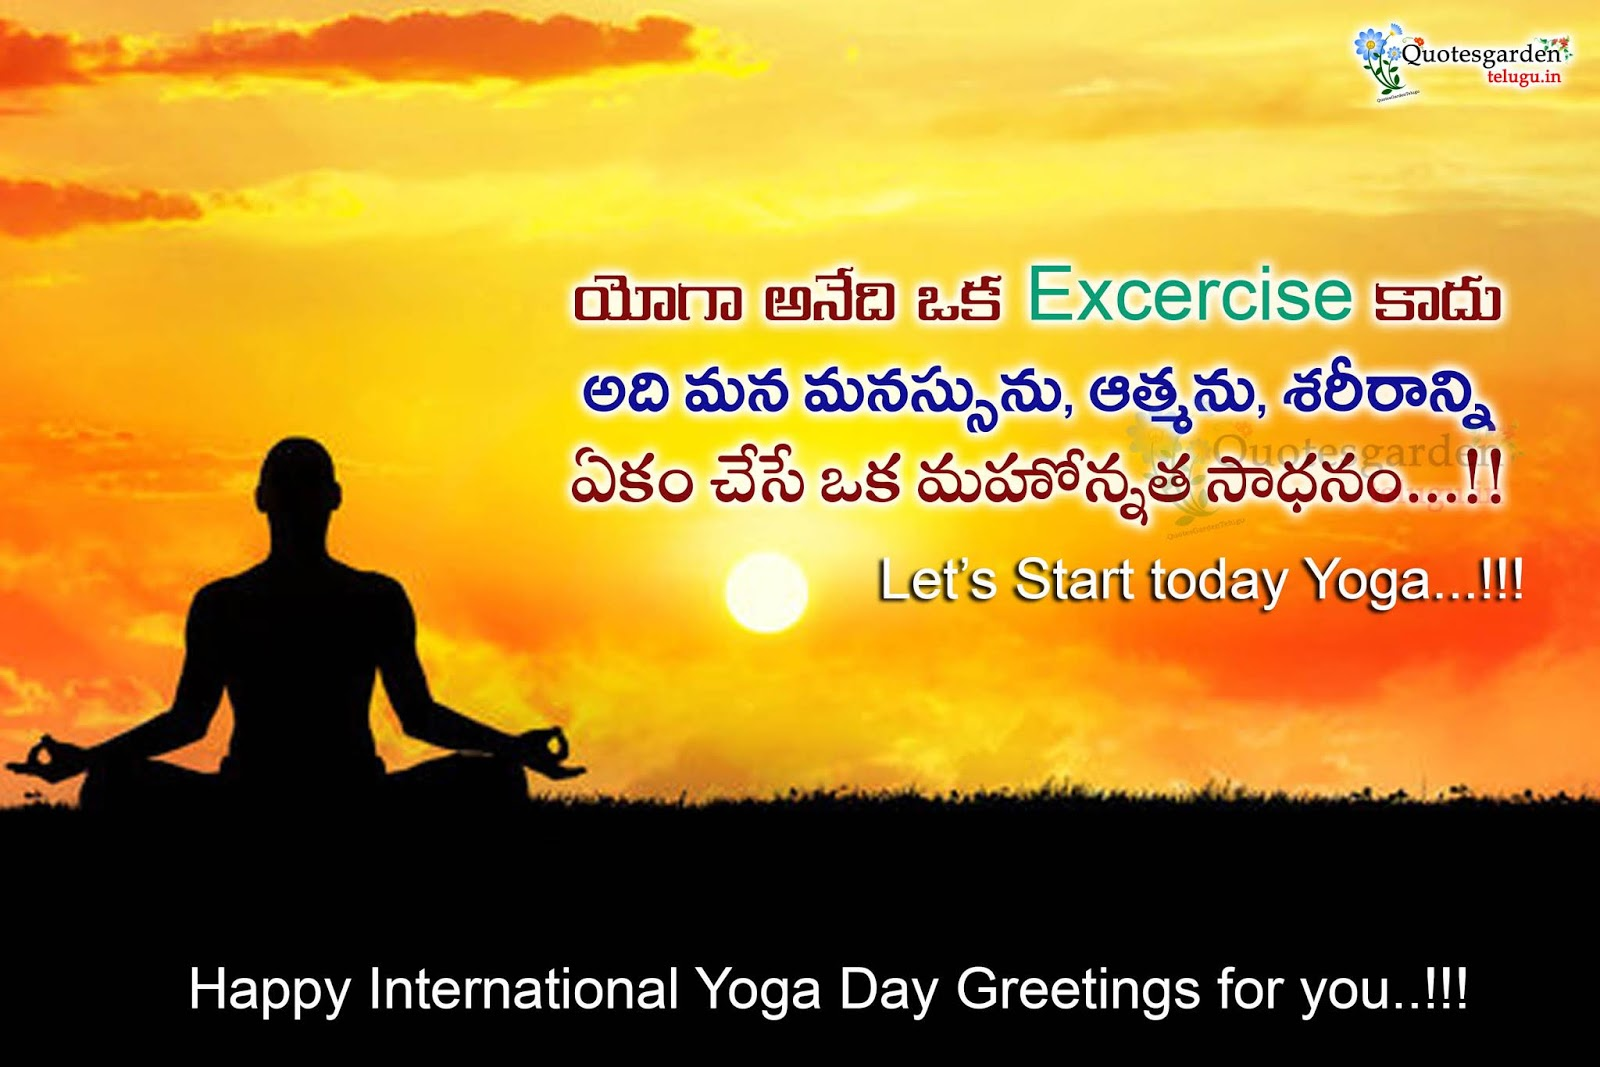 Happy International Yoga Day Wishes Greetings In Telugu Quotes